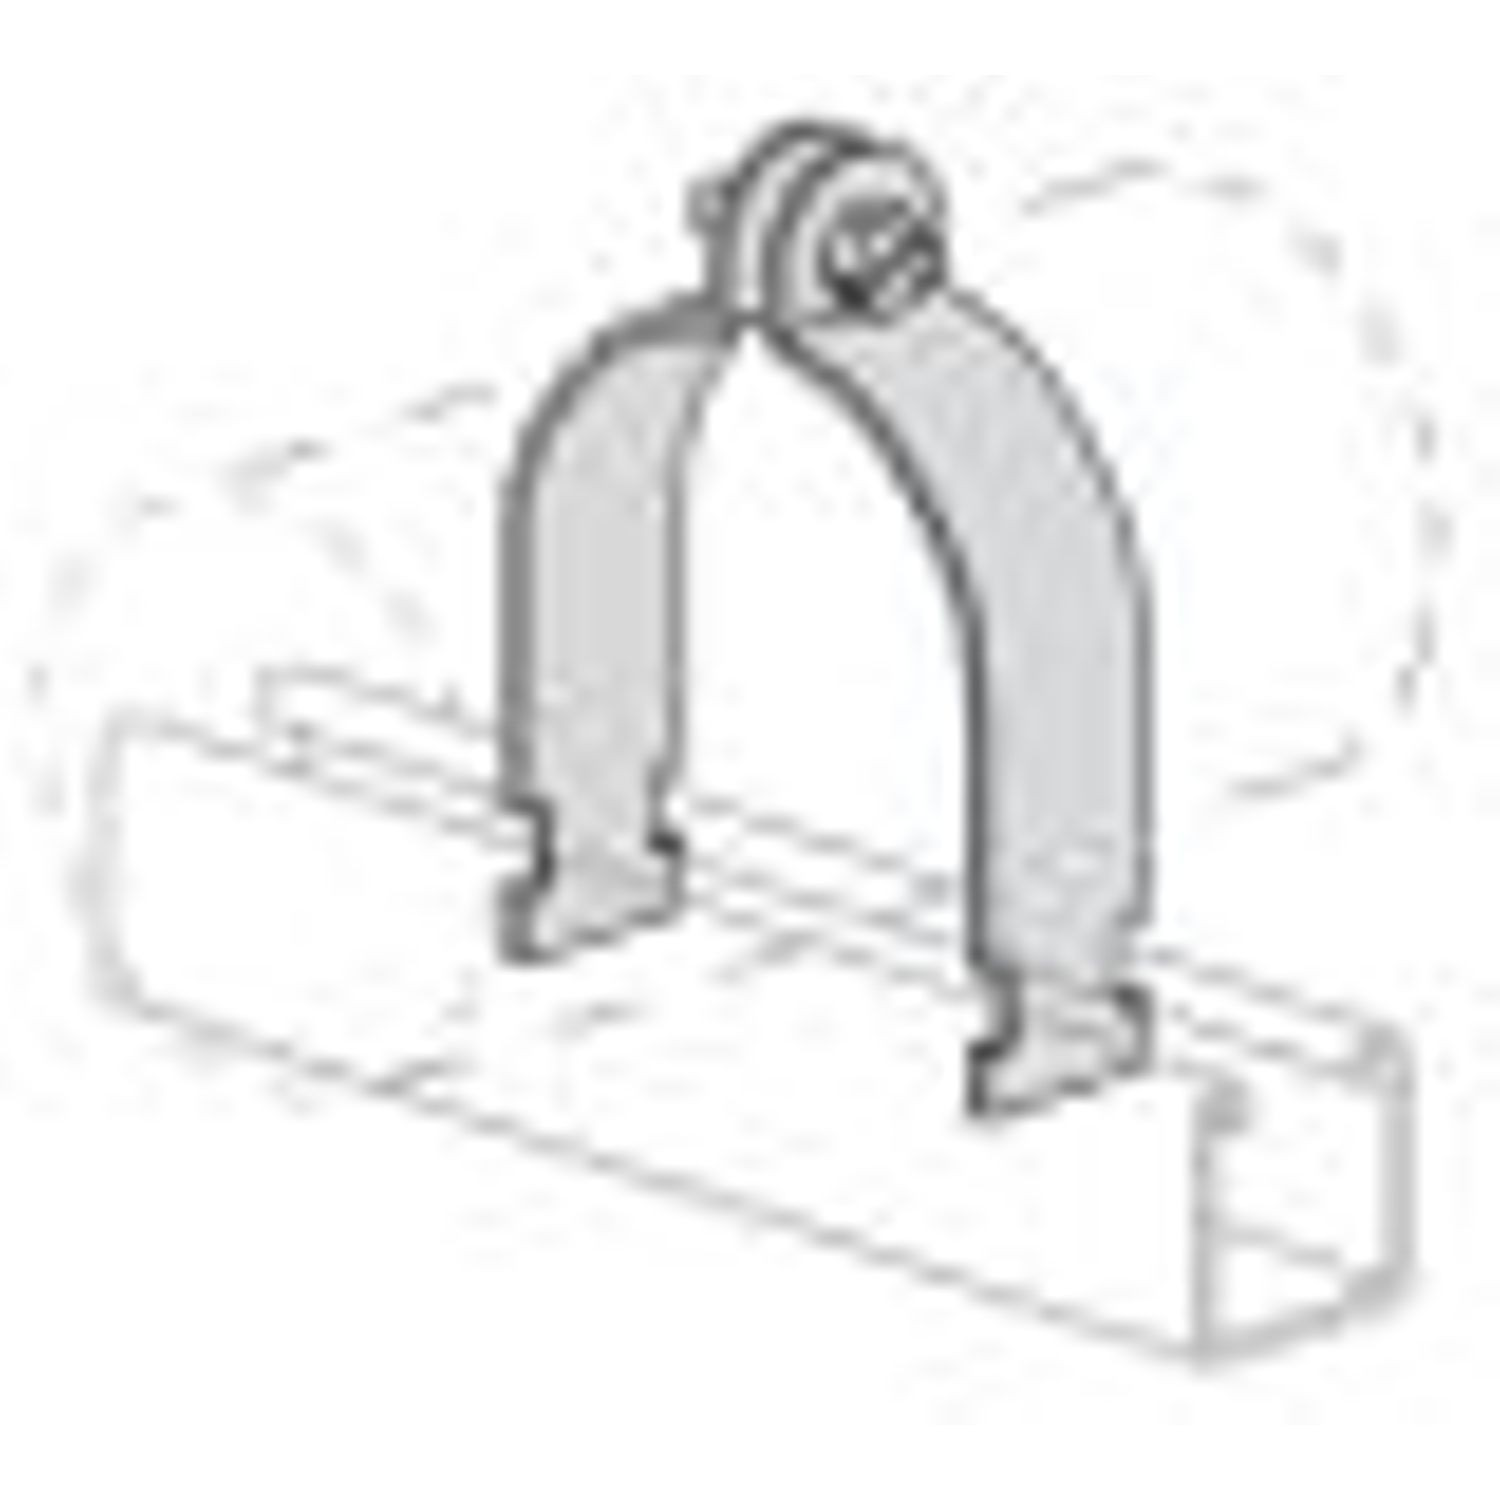 3/4 in. Hot Dipped Galvanized Steel Conduit Clamp